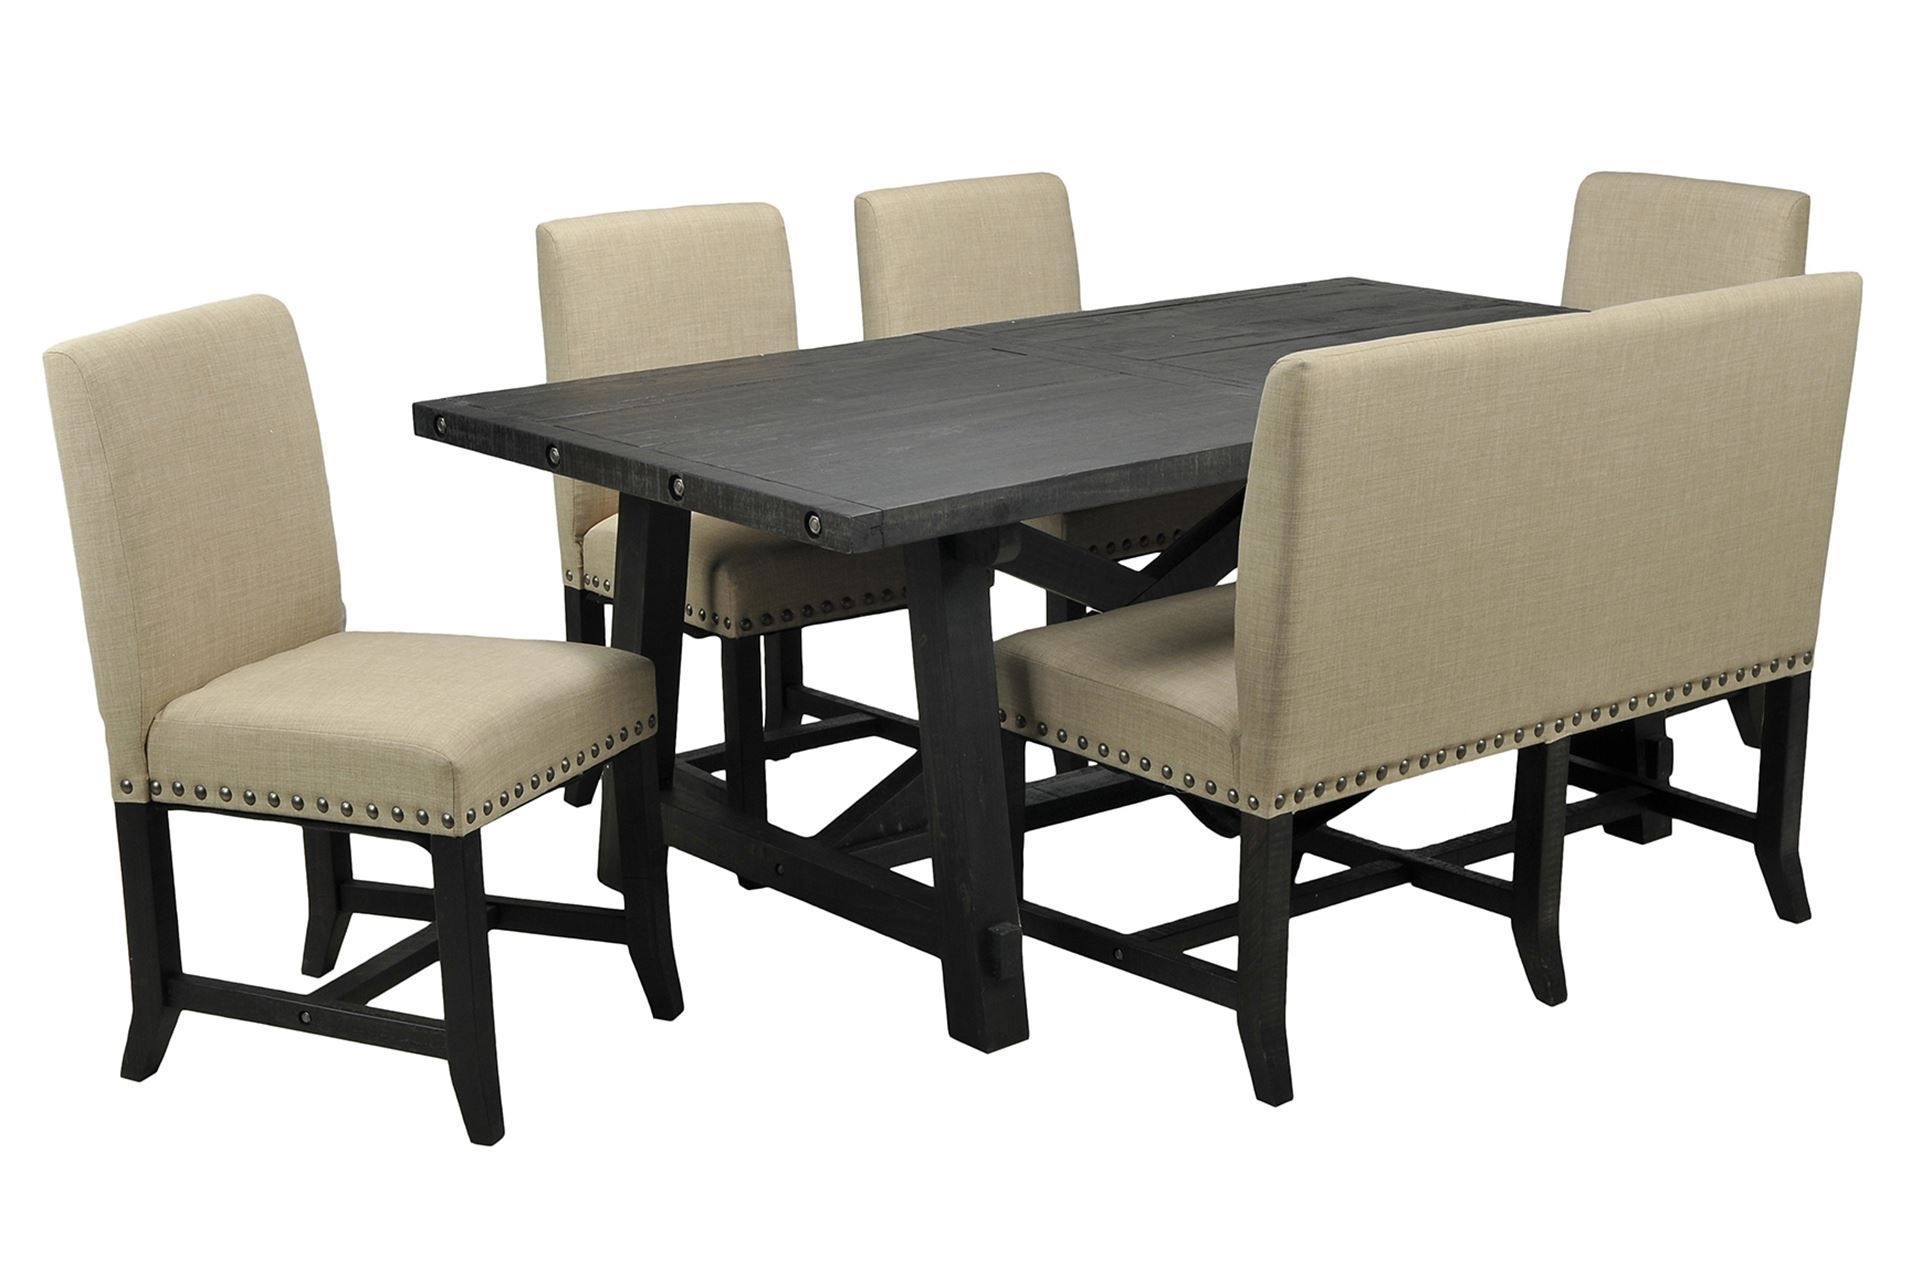 Jaxon 6 Piece Rectangle Dining Set W/bench & Uph Chairs | Home Decor Throughout Recent Jaxon Grey 6 Piece Rectangle Extension Dining Sets With Bench & Uph Chairs (Photo 5 of 20)